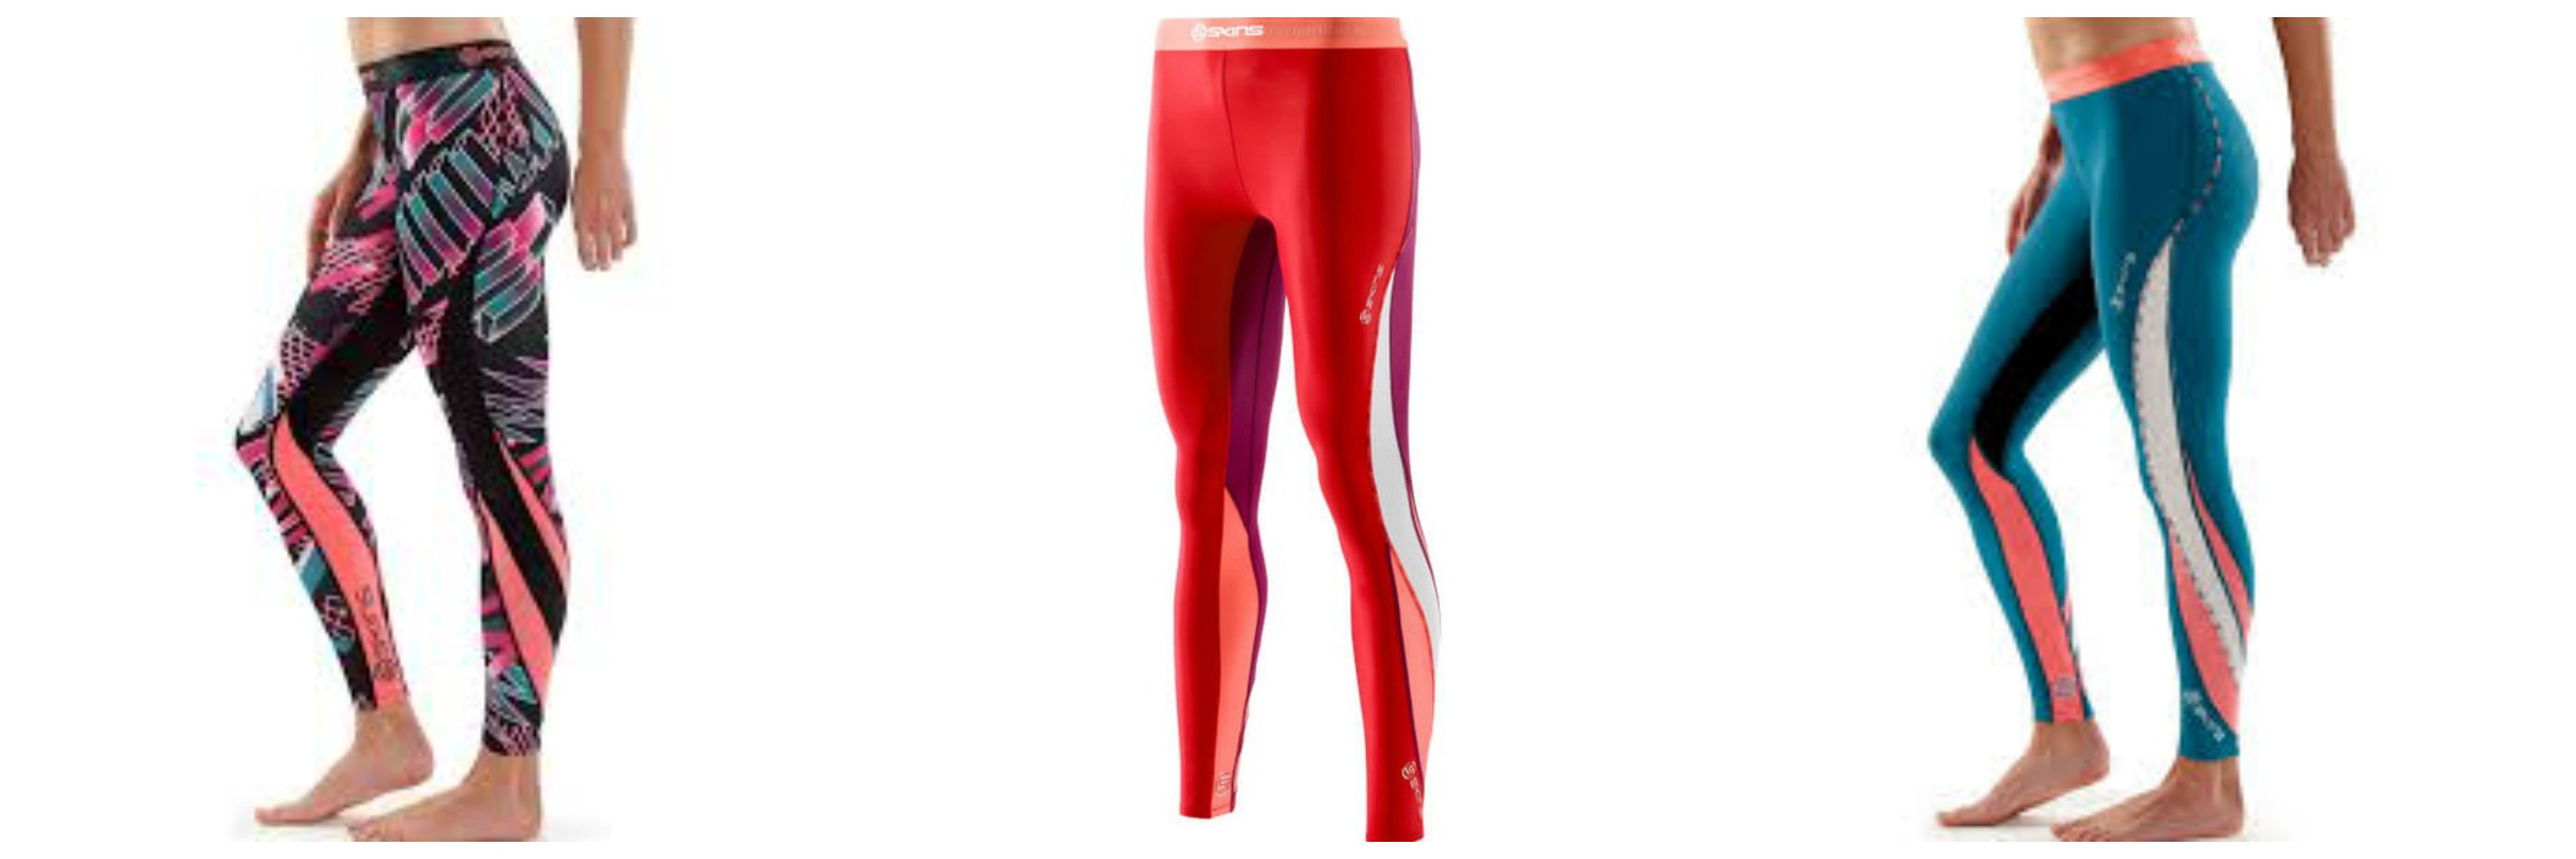 skins-dnamic-leggings